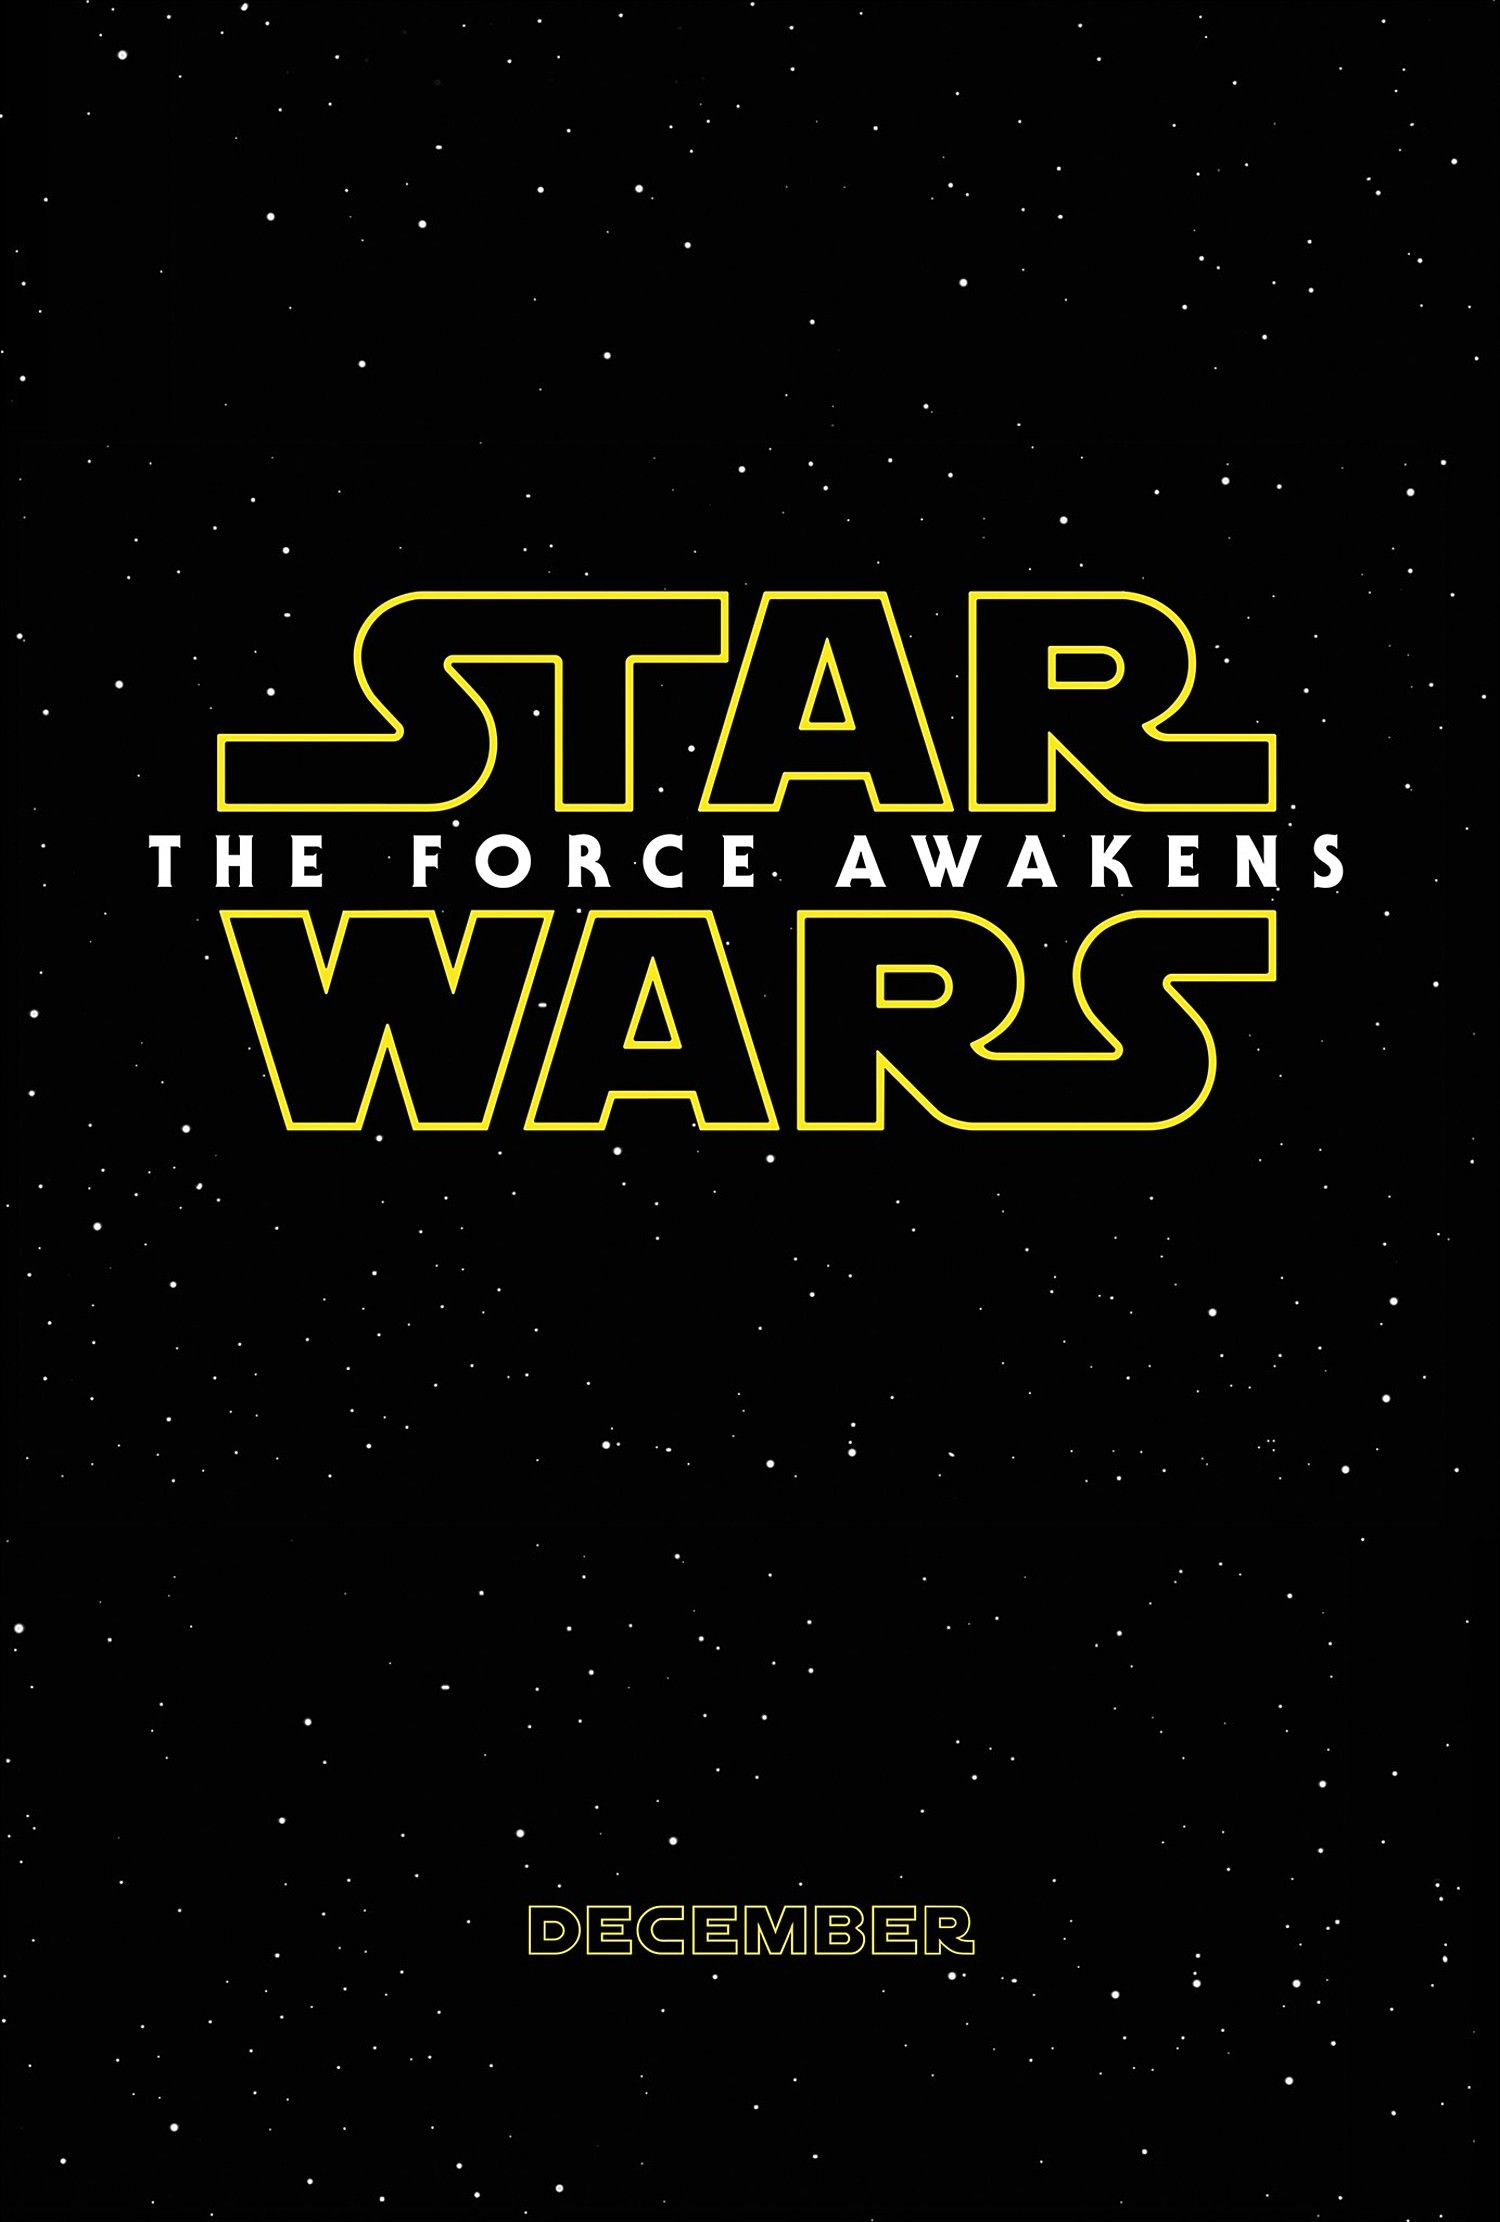 'Star Wars: The Force Awakens' Logo Poster (2014)